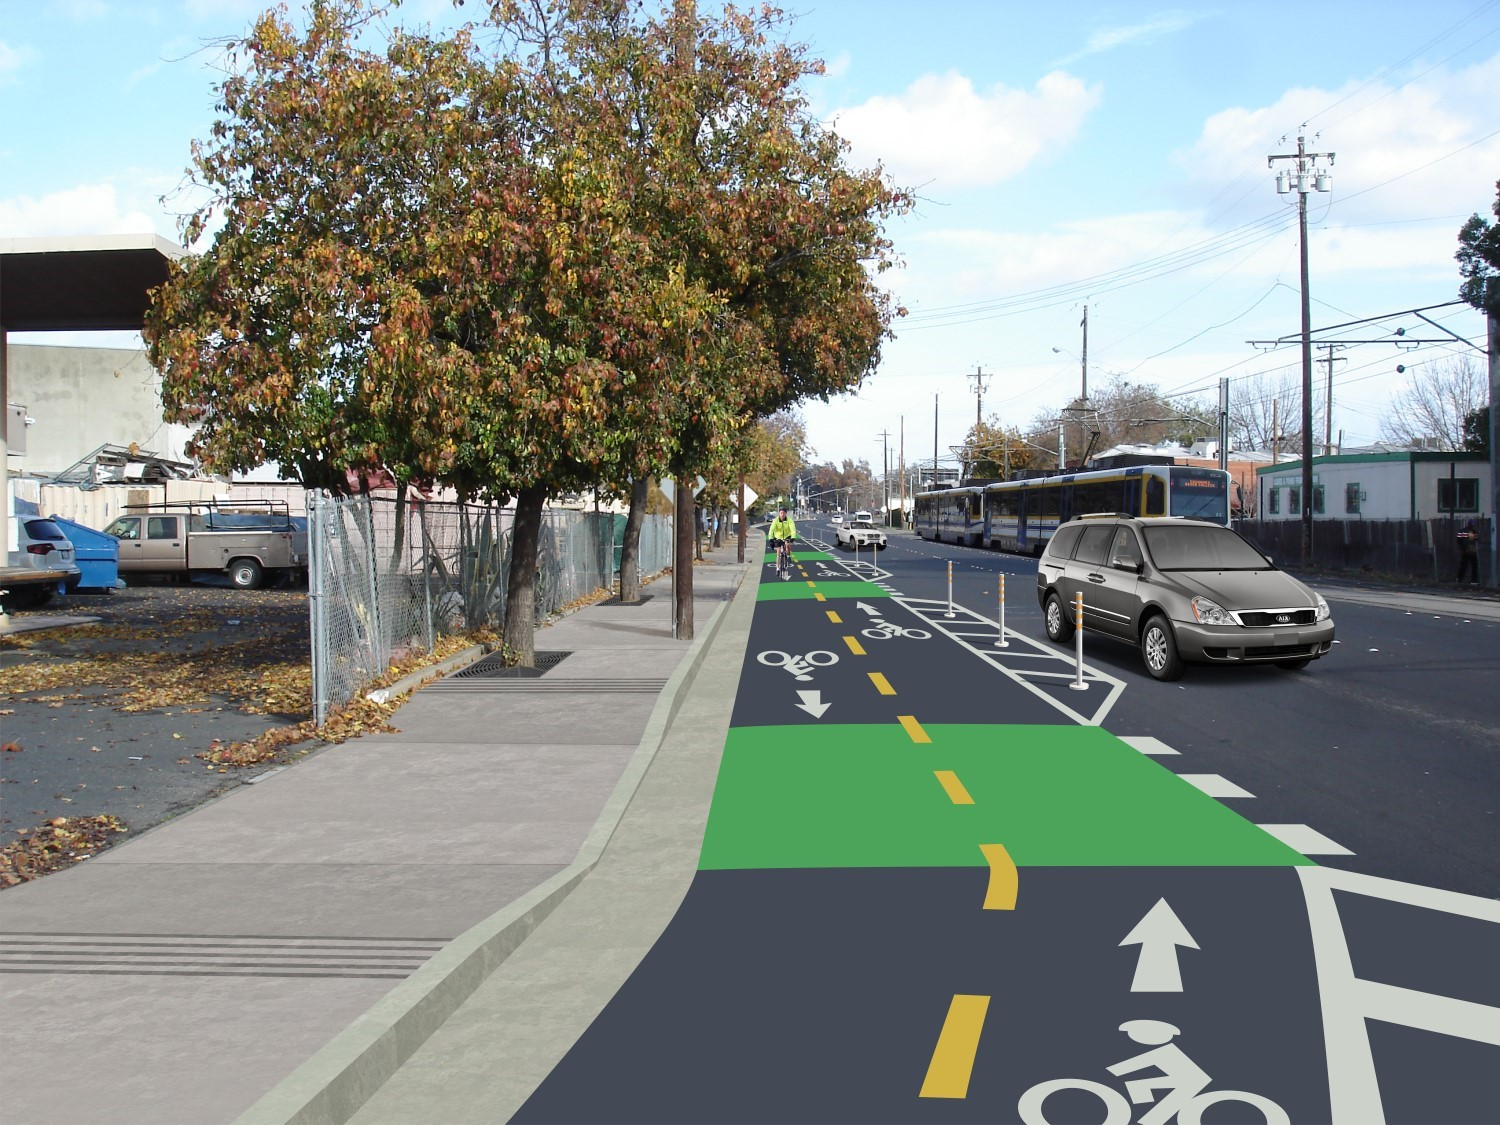 North 12th Complete Street Proposed Two-Way Class IV Bikeway